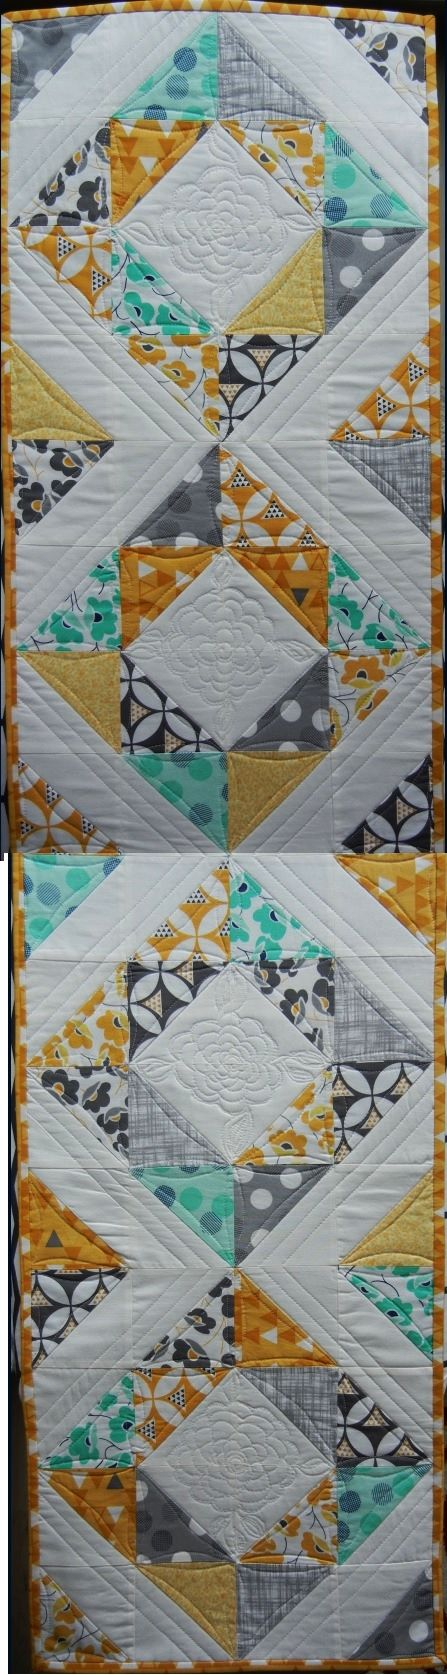 """my project: """"spring table runner """". (fabric is Color Theory by Moda ) Pattern inspired by the table runner of Pam Biswas http://www.fonsandporter.com/articles/spring-table-easy-quilt-project Actual project made from 8.5"""" squares according to free tutorial by Jenny Doan from the Missouri Star Quilt Company https://www.youtube.com/watch?v=HvlKs7sEAl0 Free motion flower according to tutorial on theInboxJaunt (she's fantastic!) http://theinboxjaunt.com/quilt/free-motion-quilting-tutorials/"""